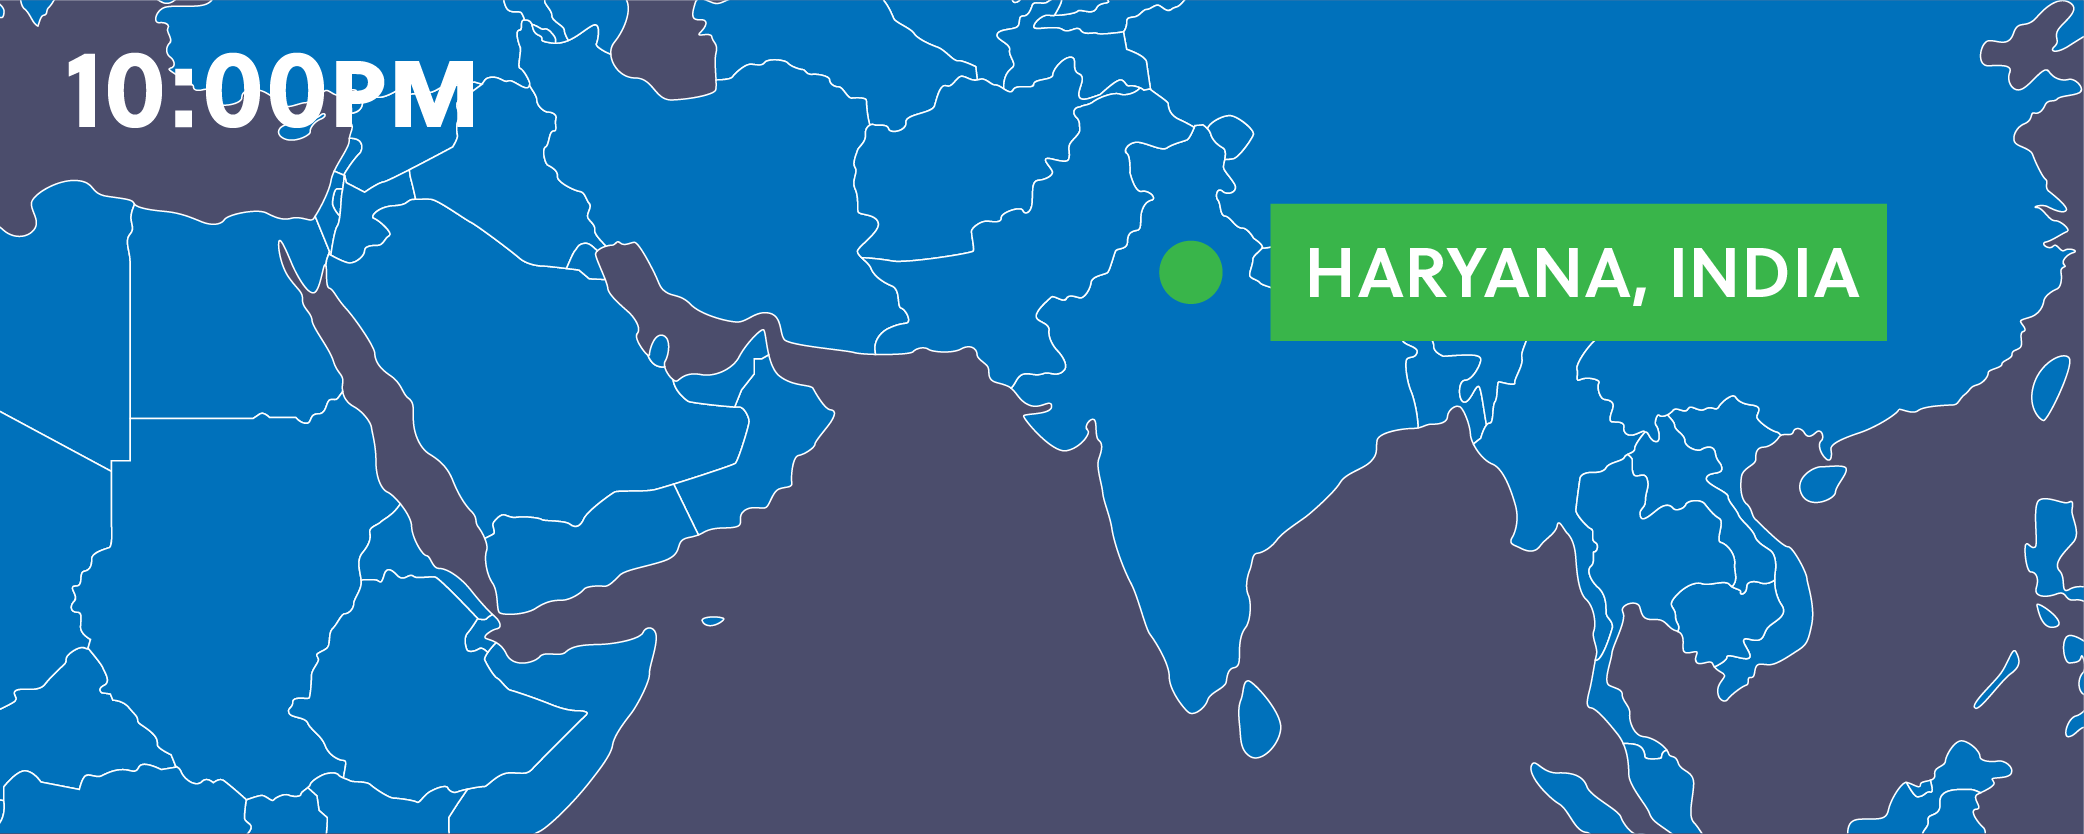 Map showing Haryana, India.